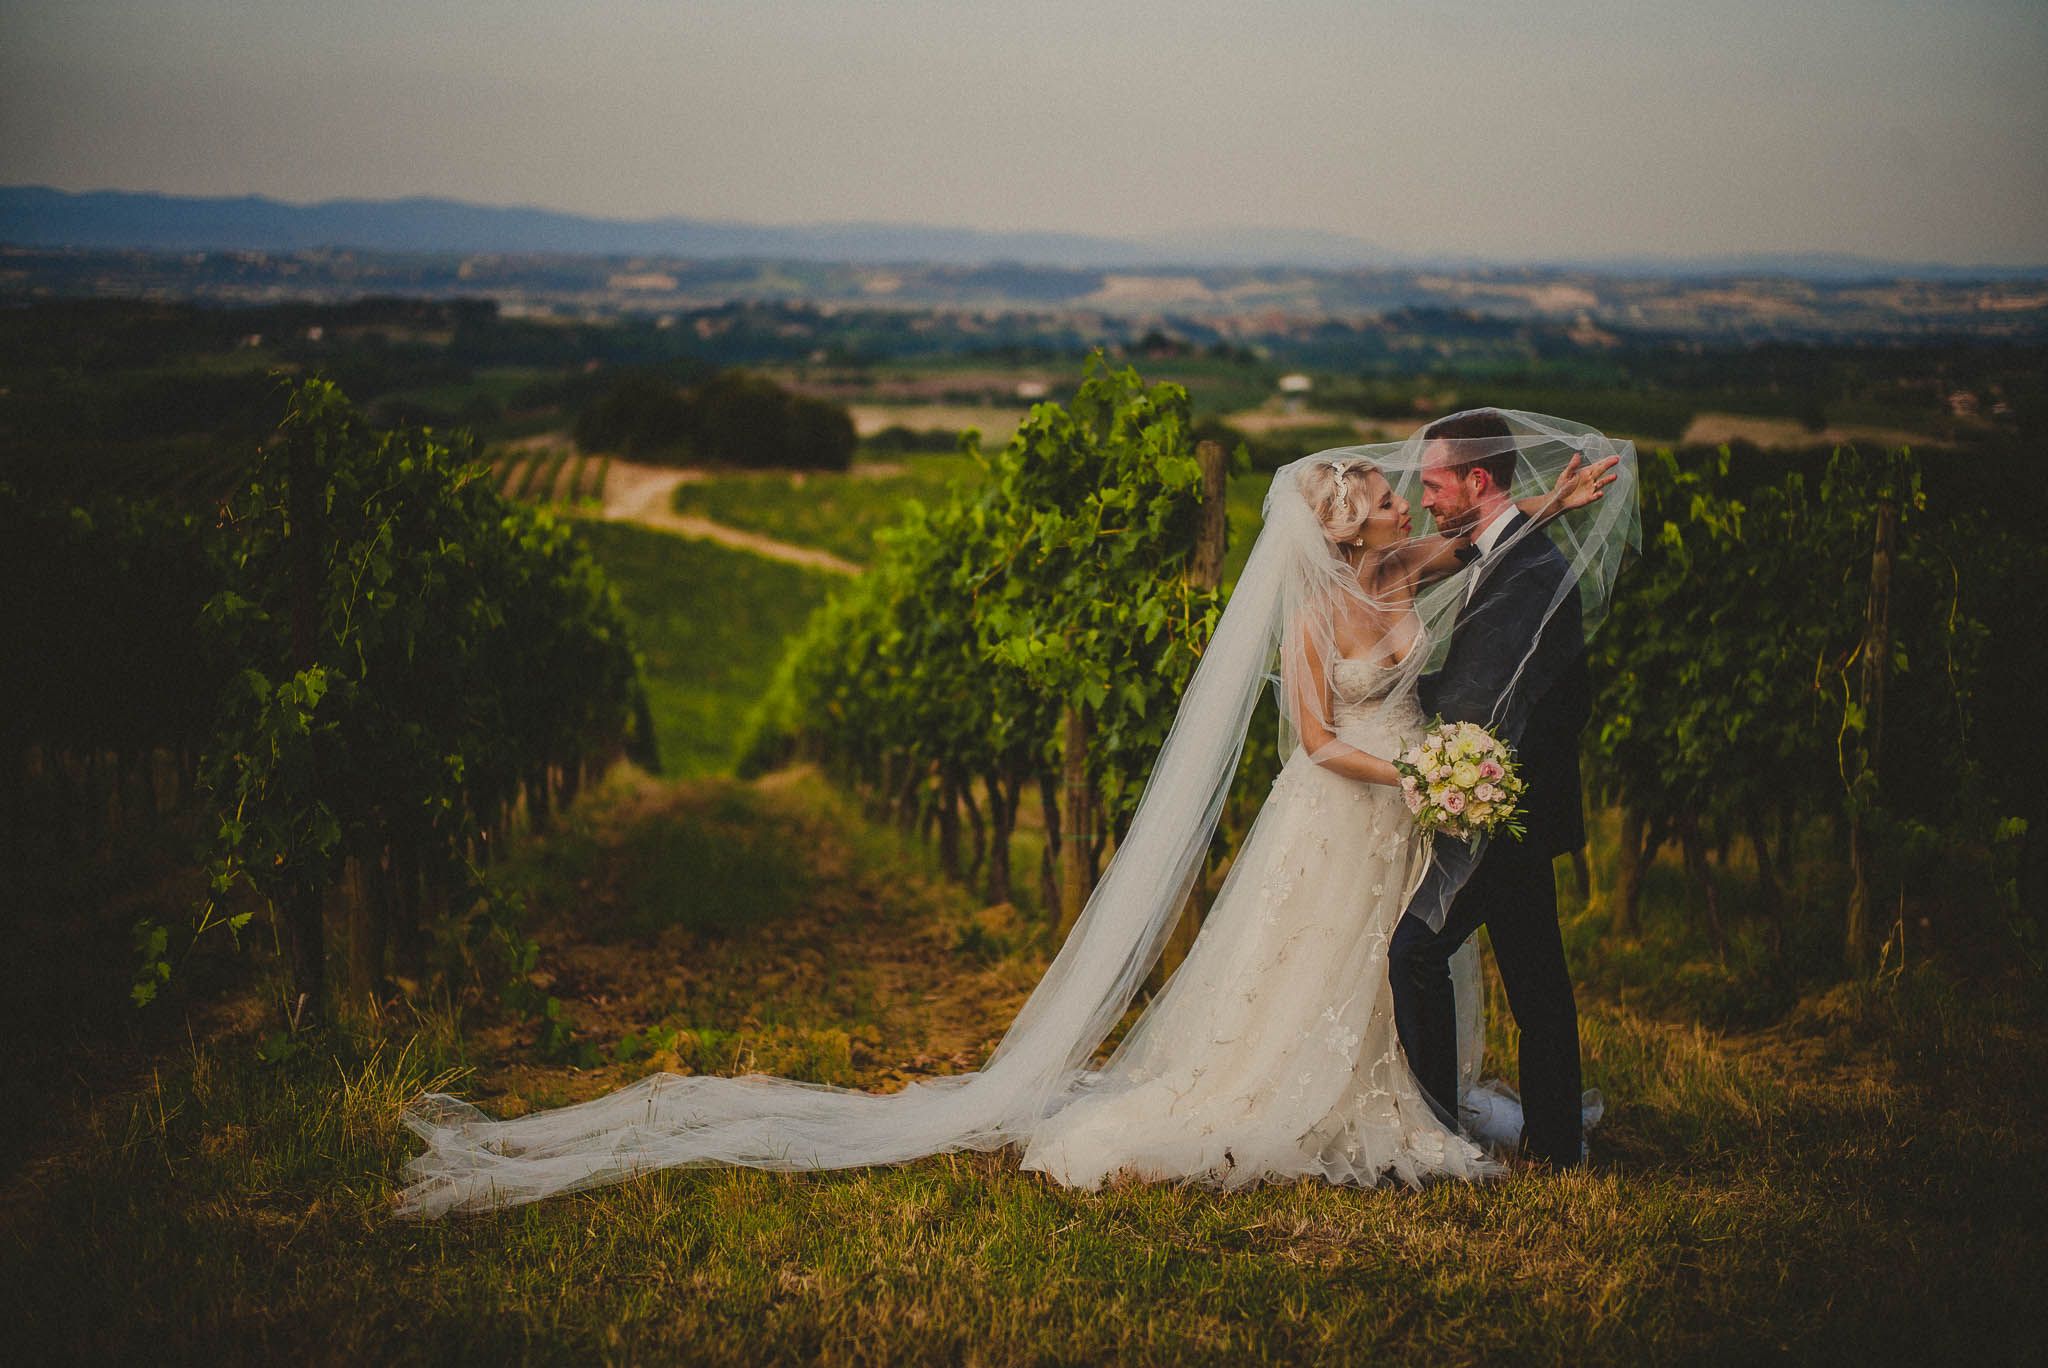 livio-lacurre-the-best-persian-wedding-photographer-in-tuscany